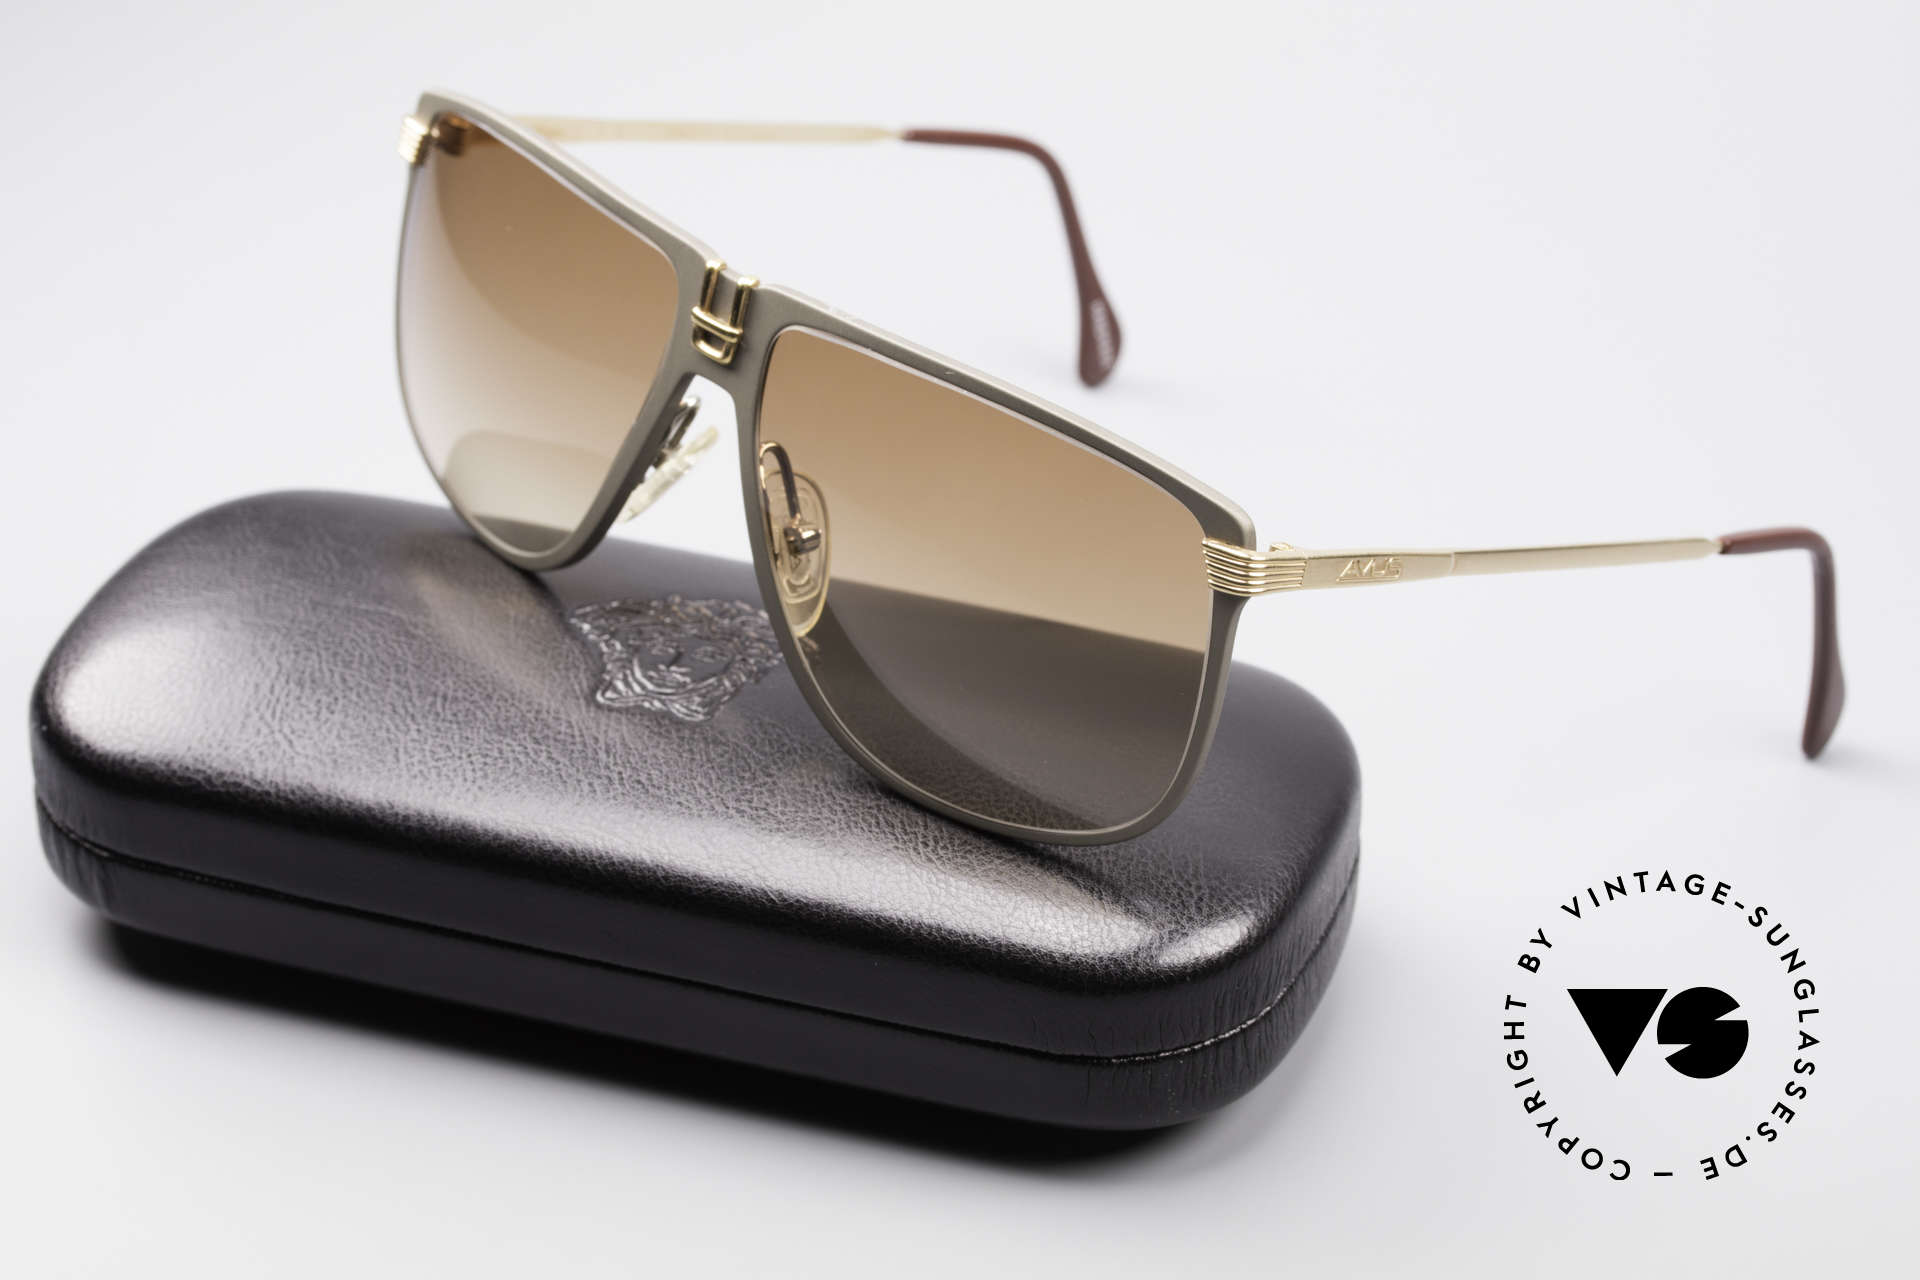 AVUS 210-30 West Germany Sunglasses, NO RETRO shades, but true vintage! (incl. Versace case), Made for Men